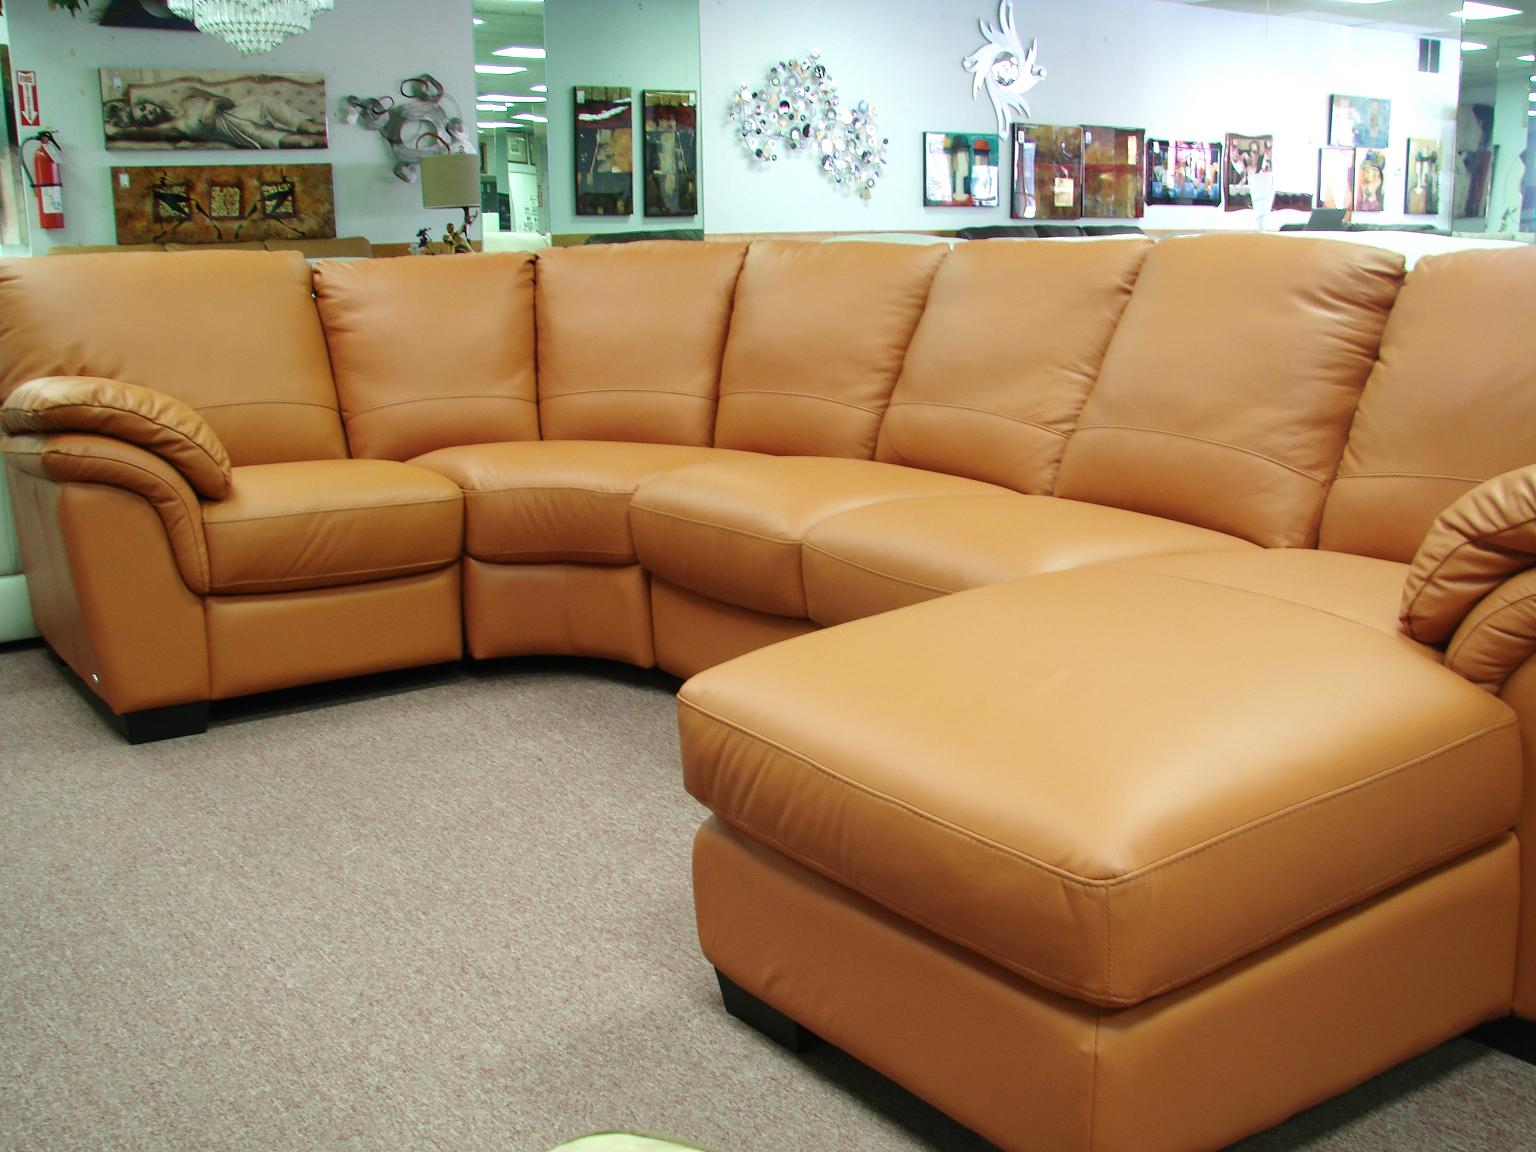 Sectional Sofa Sale London Natuzzi Leather Sofas And Sectionals By Interior Concepts